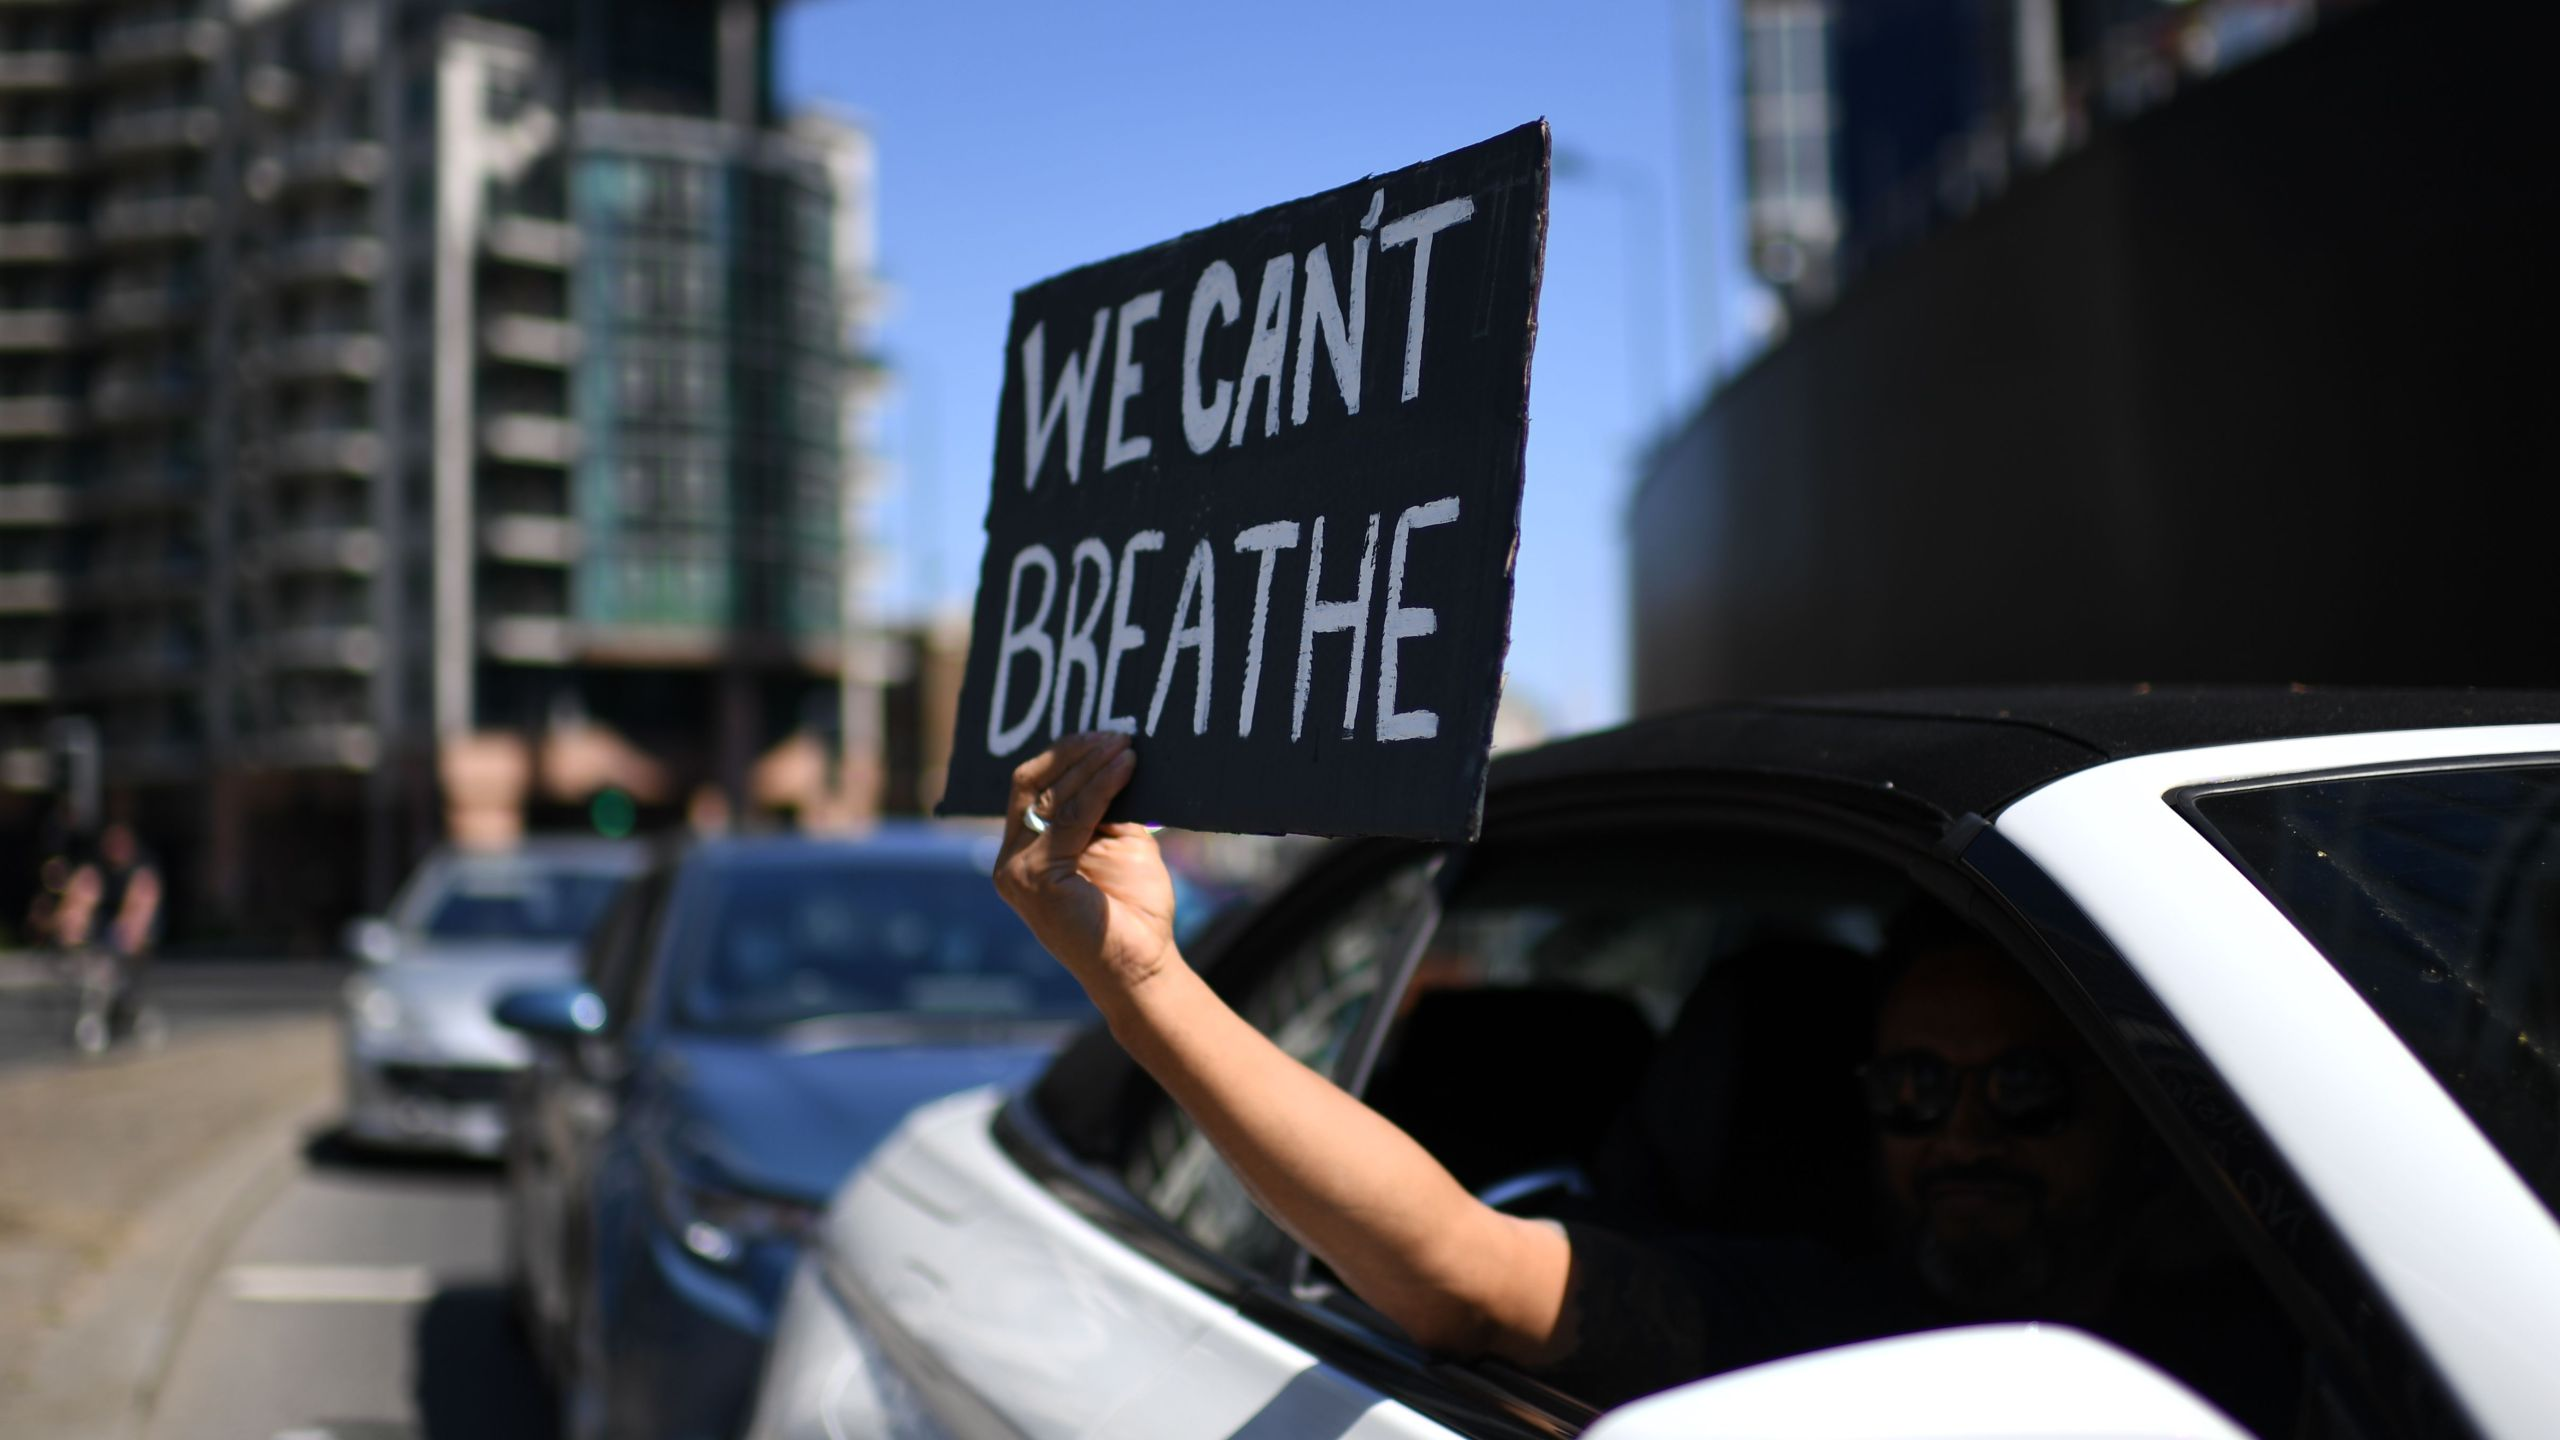 "A sign displaying the message ""We Can't Breathe"" is held out of a car window as demonstrators make their way towards the U.S. Embassy in central London on May 31, 2020, to protest the death of George Floyd, who died after a police officer knelt on his neck for nearly nine minutes during an arrest in Minneapolis. (DANIEL LEAL-OLIVAS/AFP via Getty Images)"